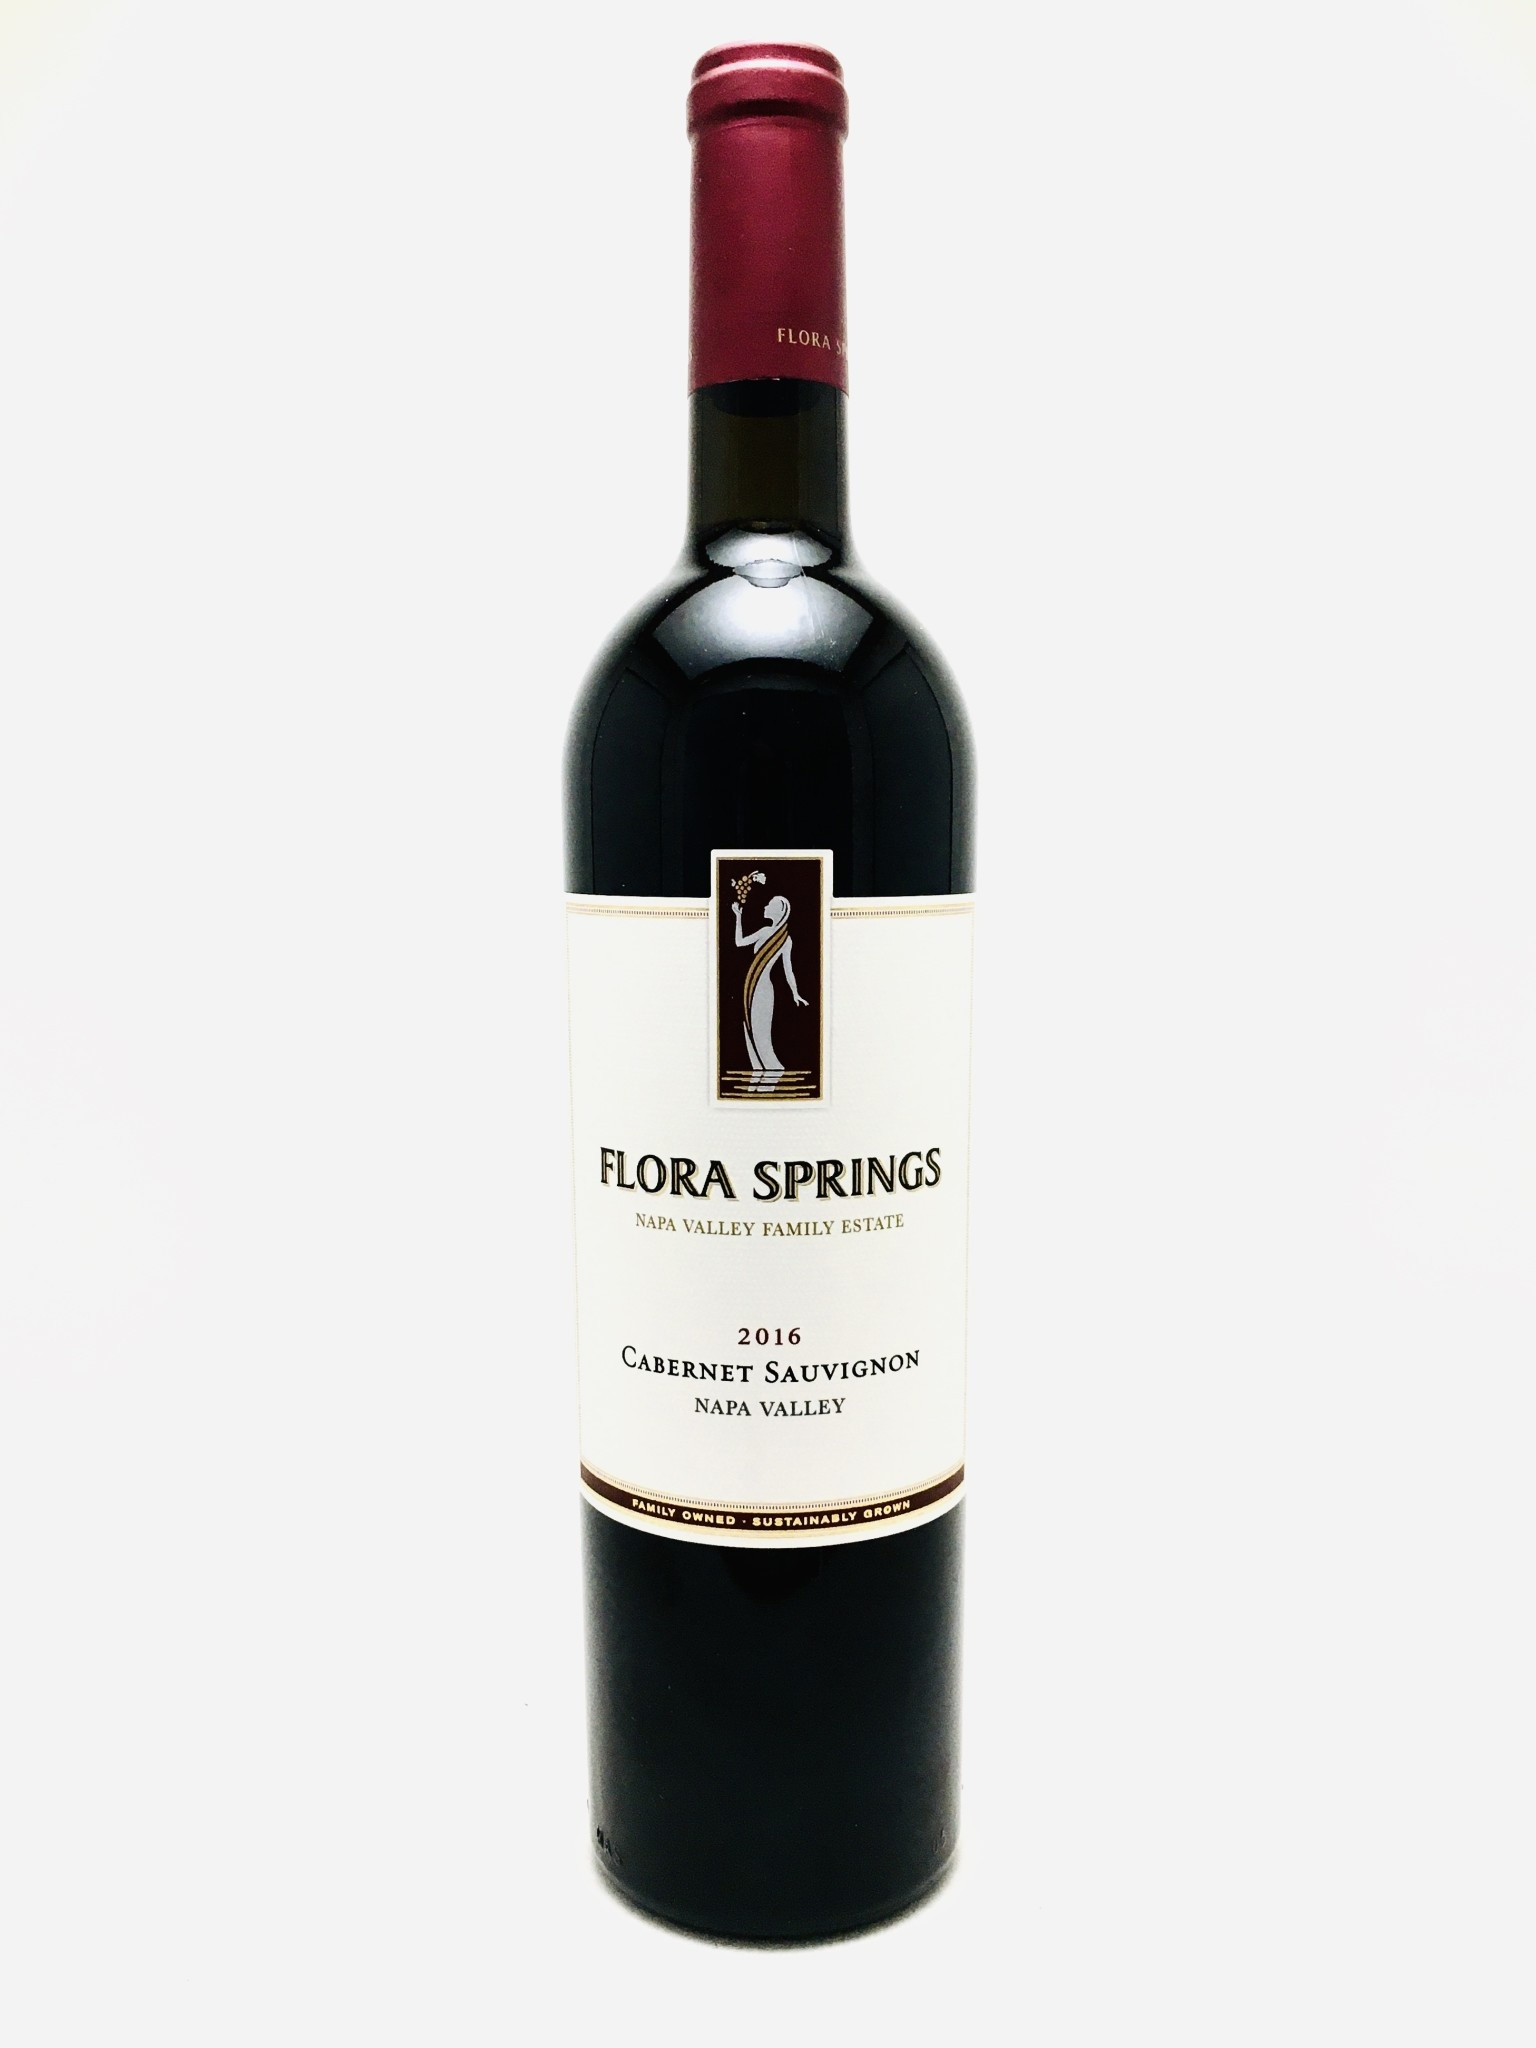 Flora Springs Cabernet Sauvignon Napa Valley California 2017